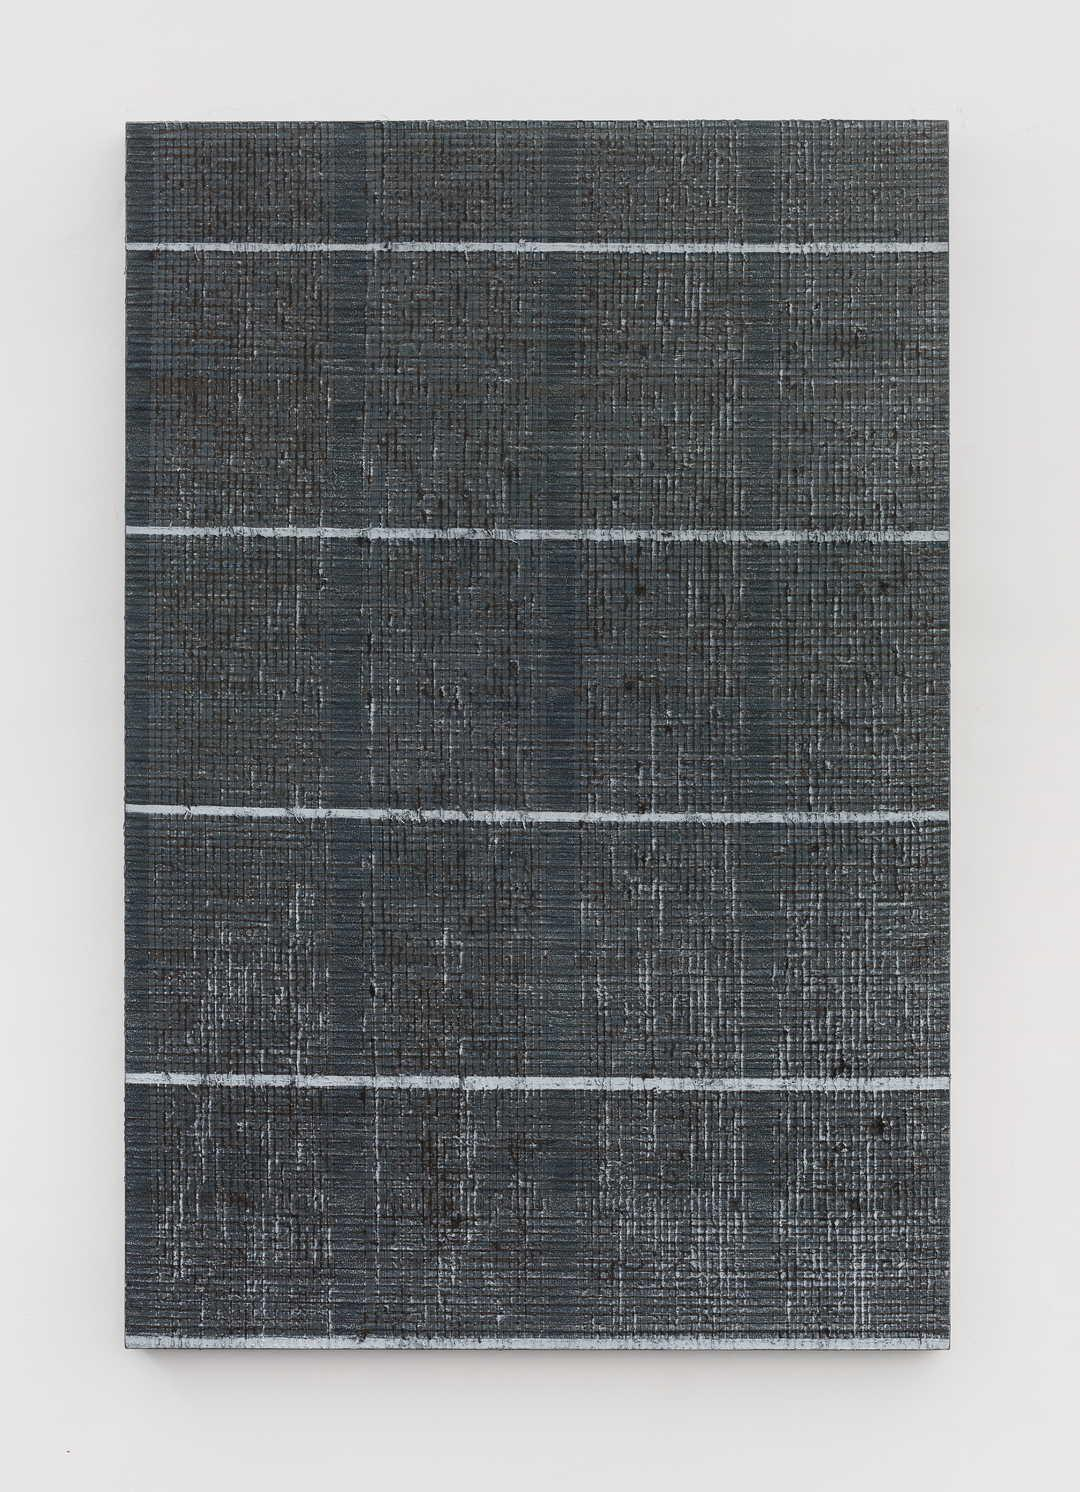 《五条白线-棕灰》Five white lines-brown grey  迟群 200x135cm 2018年 布面油画